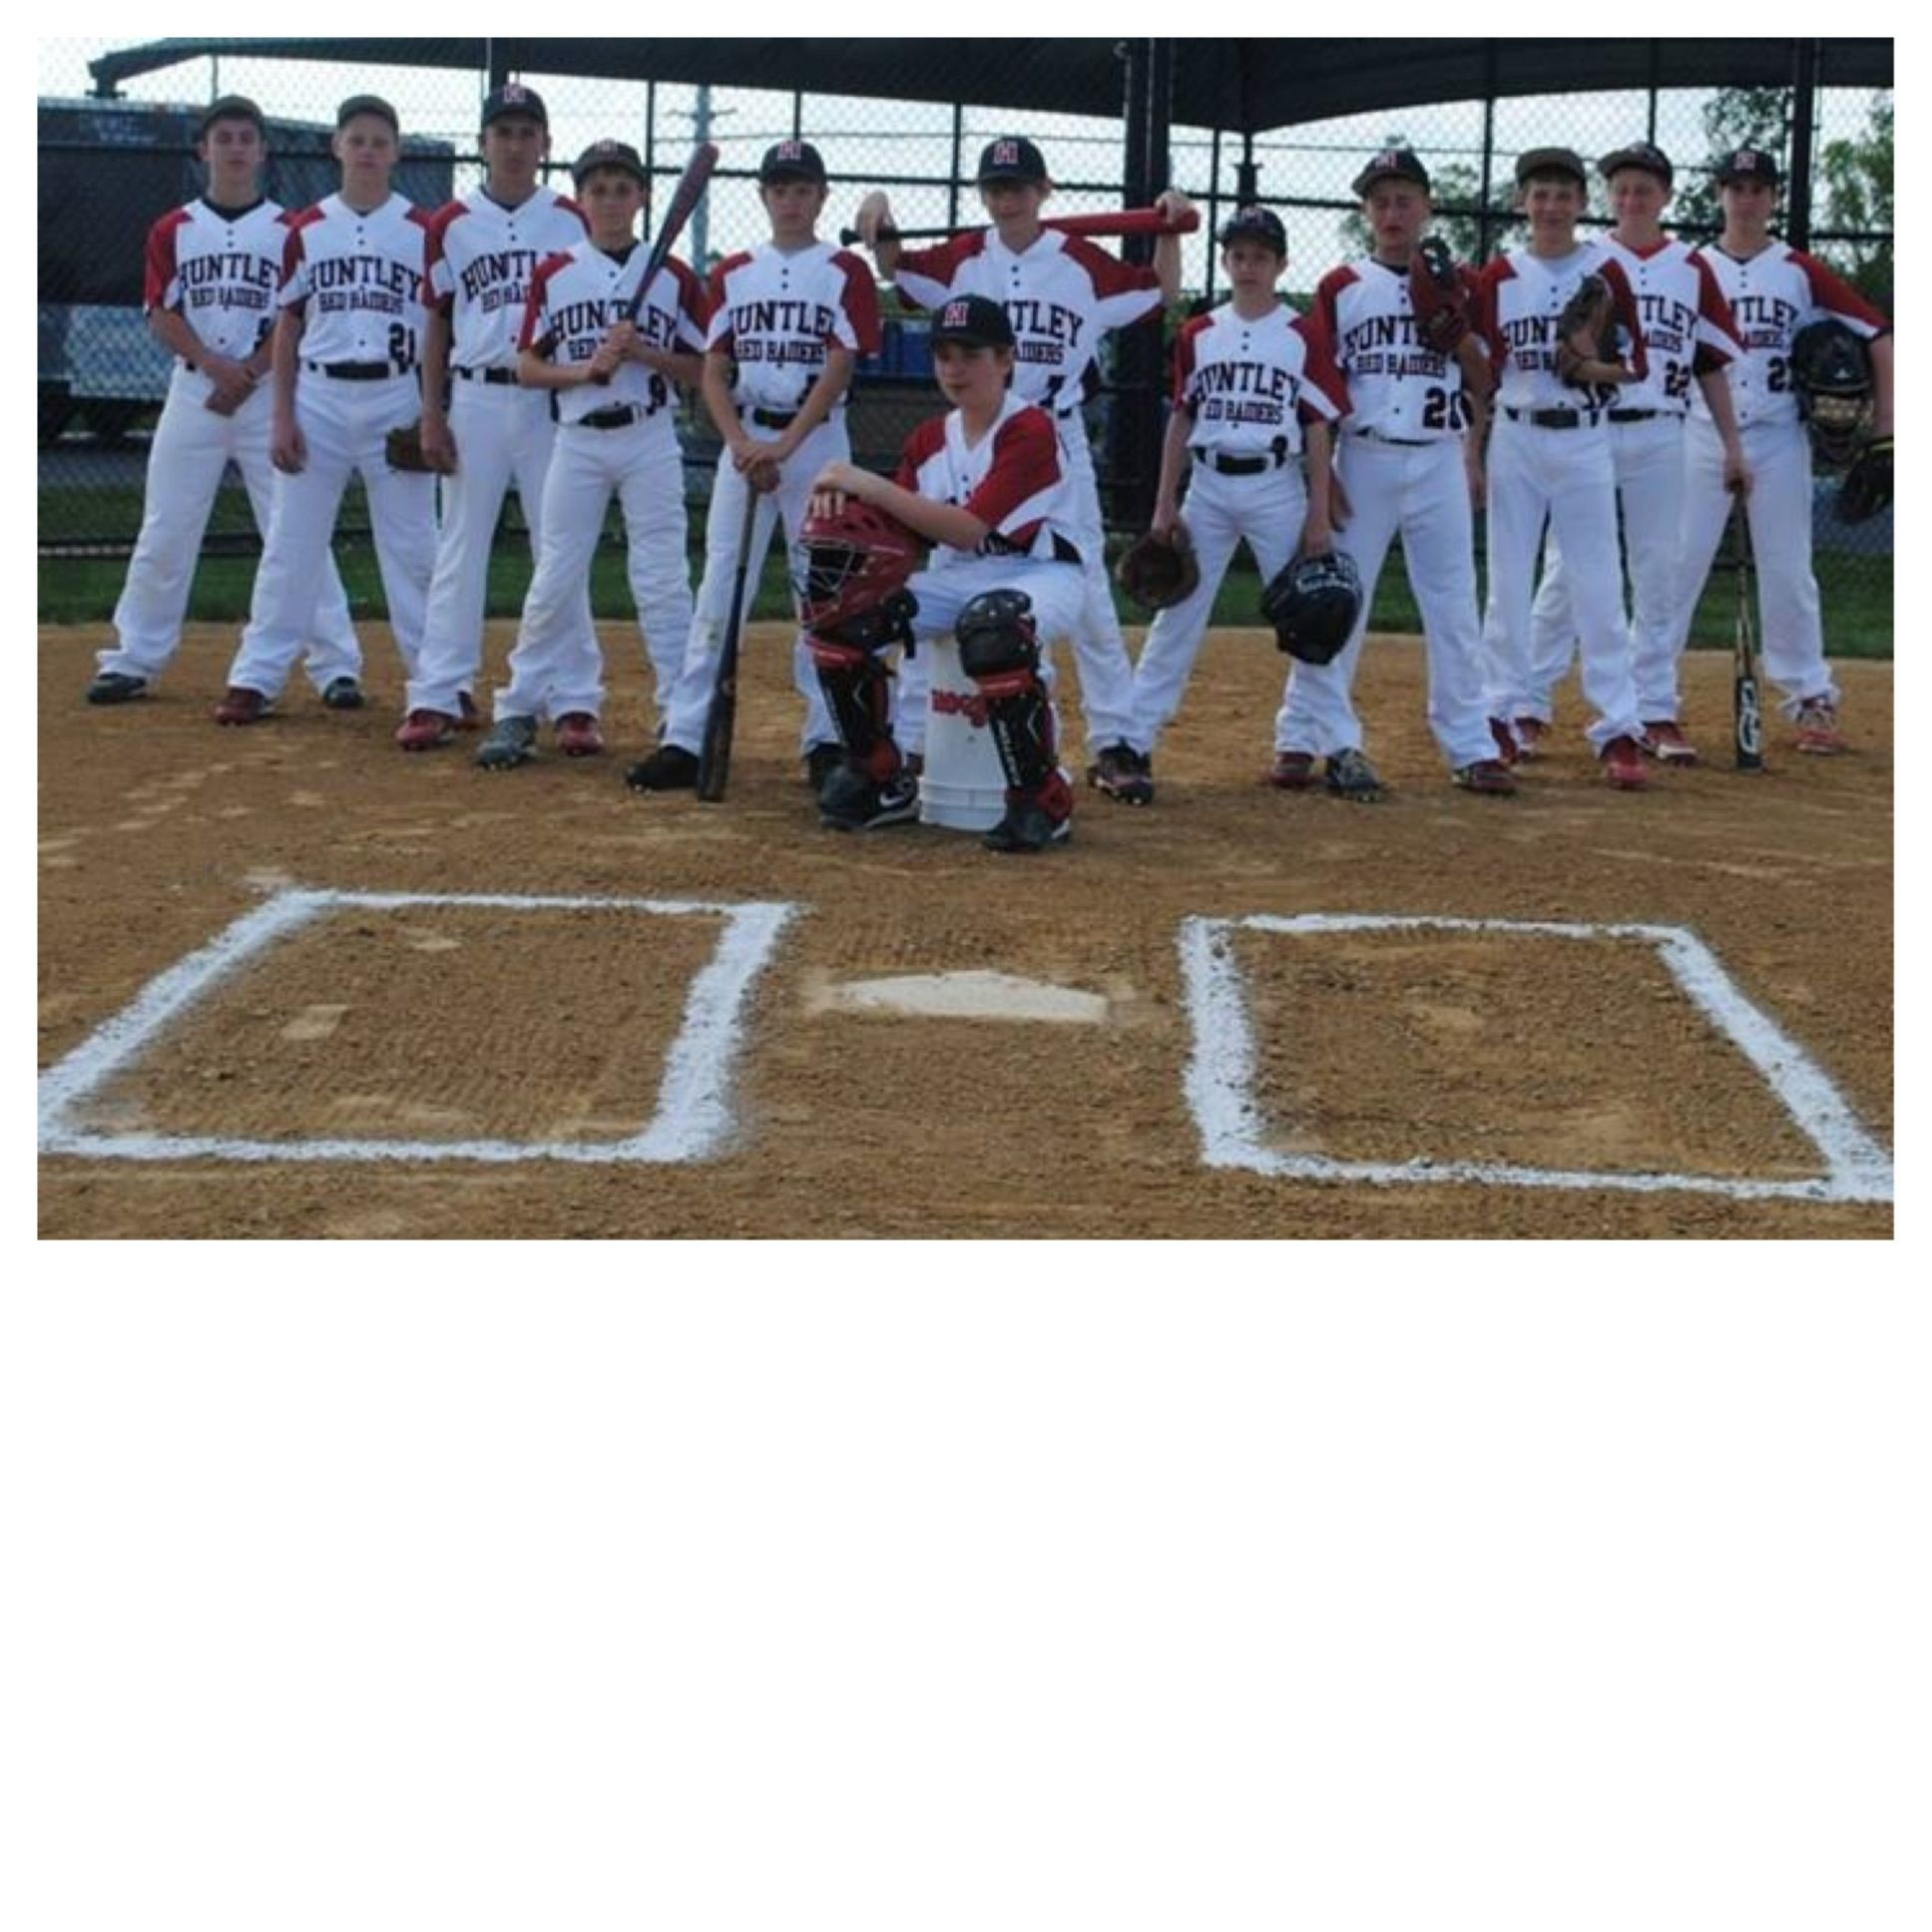 Team Picture Cute Idea For Team Photo Of A Baseball Team Banner Idea Baseball Team Pictures Team Pictures Baseball Banner